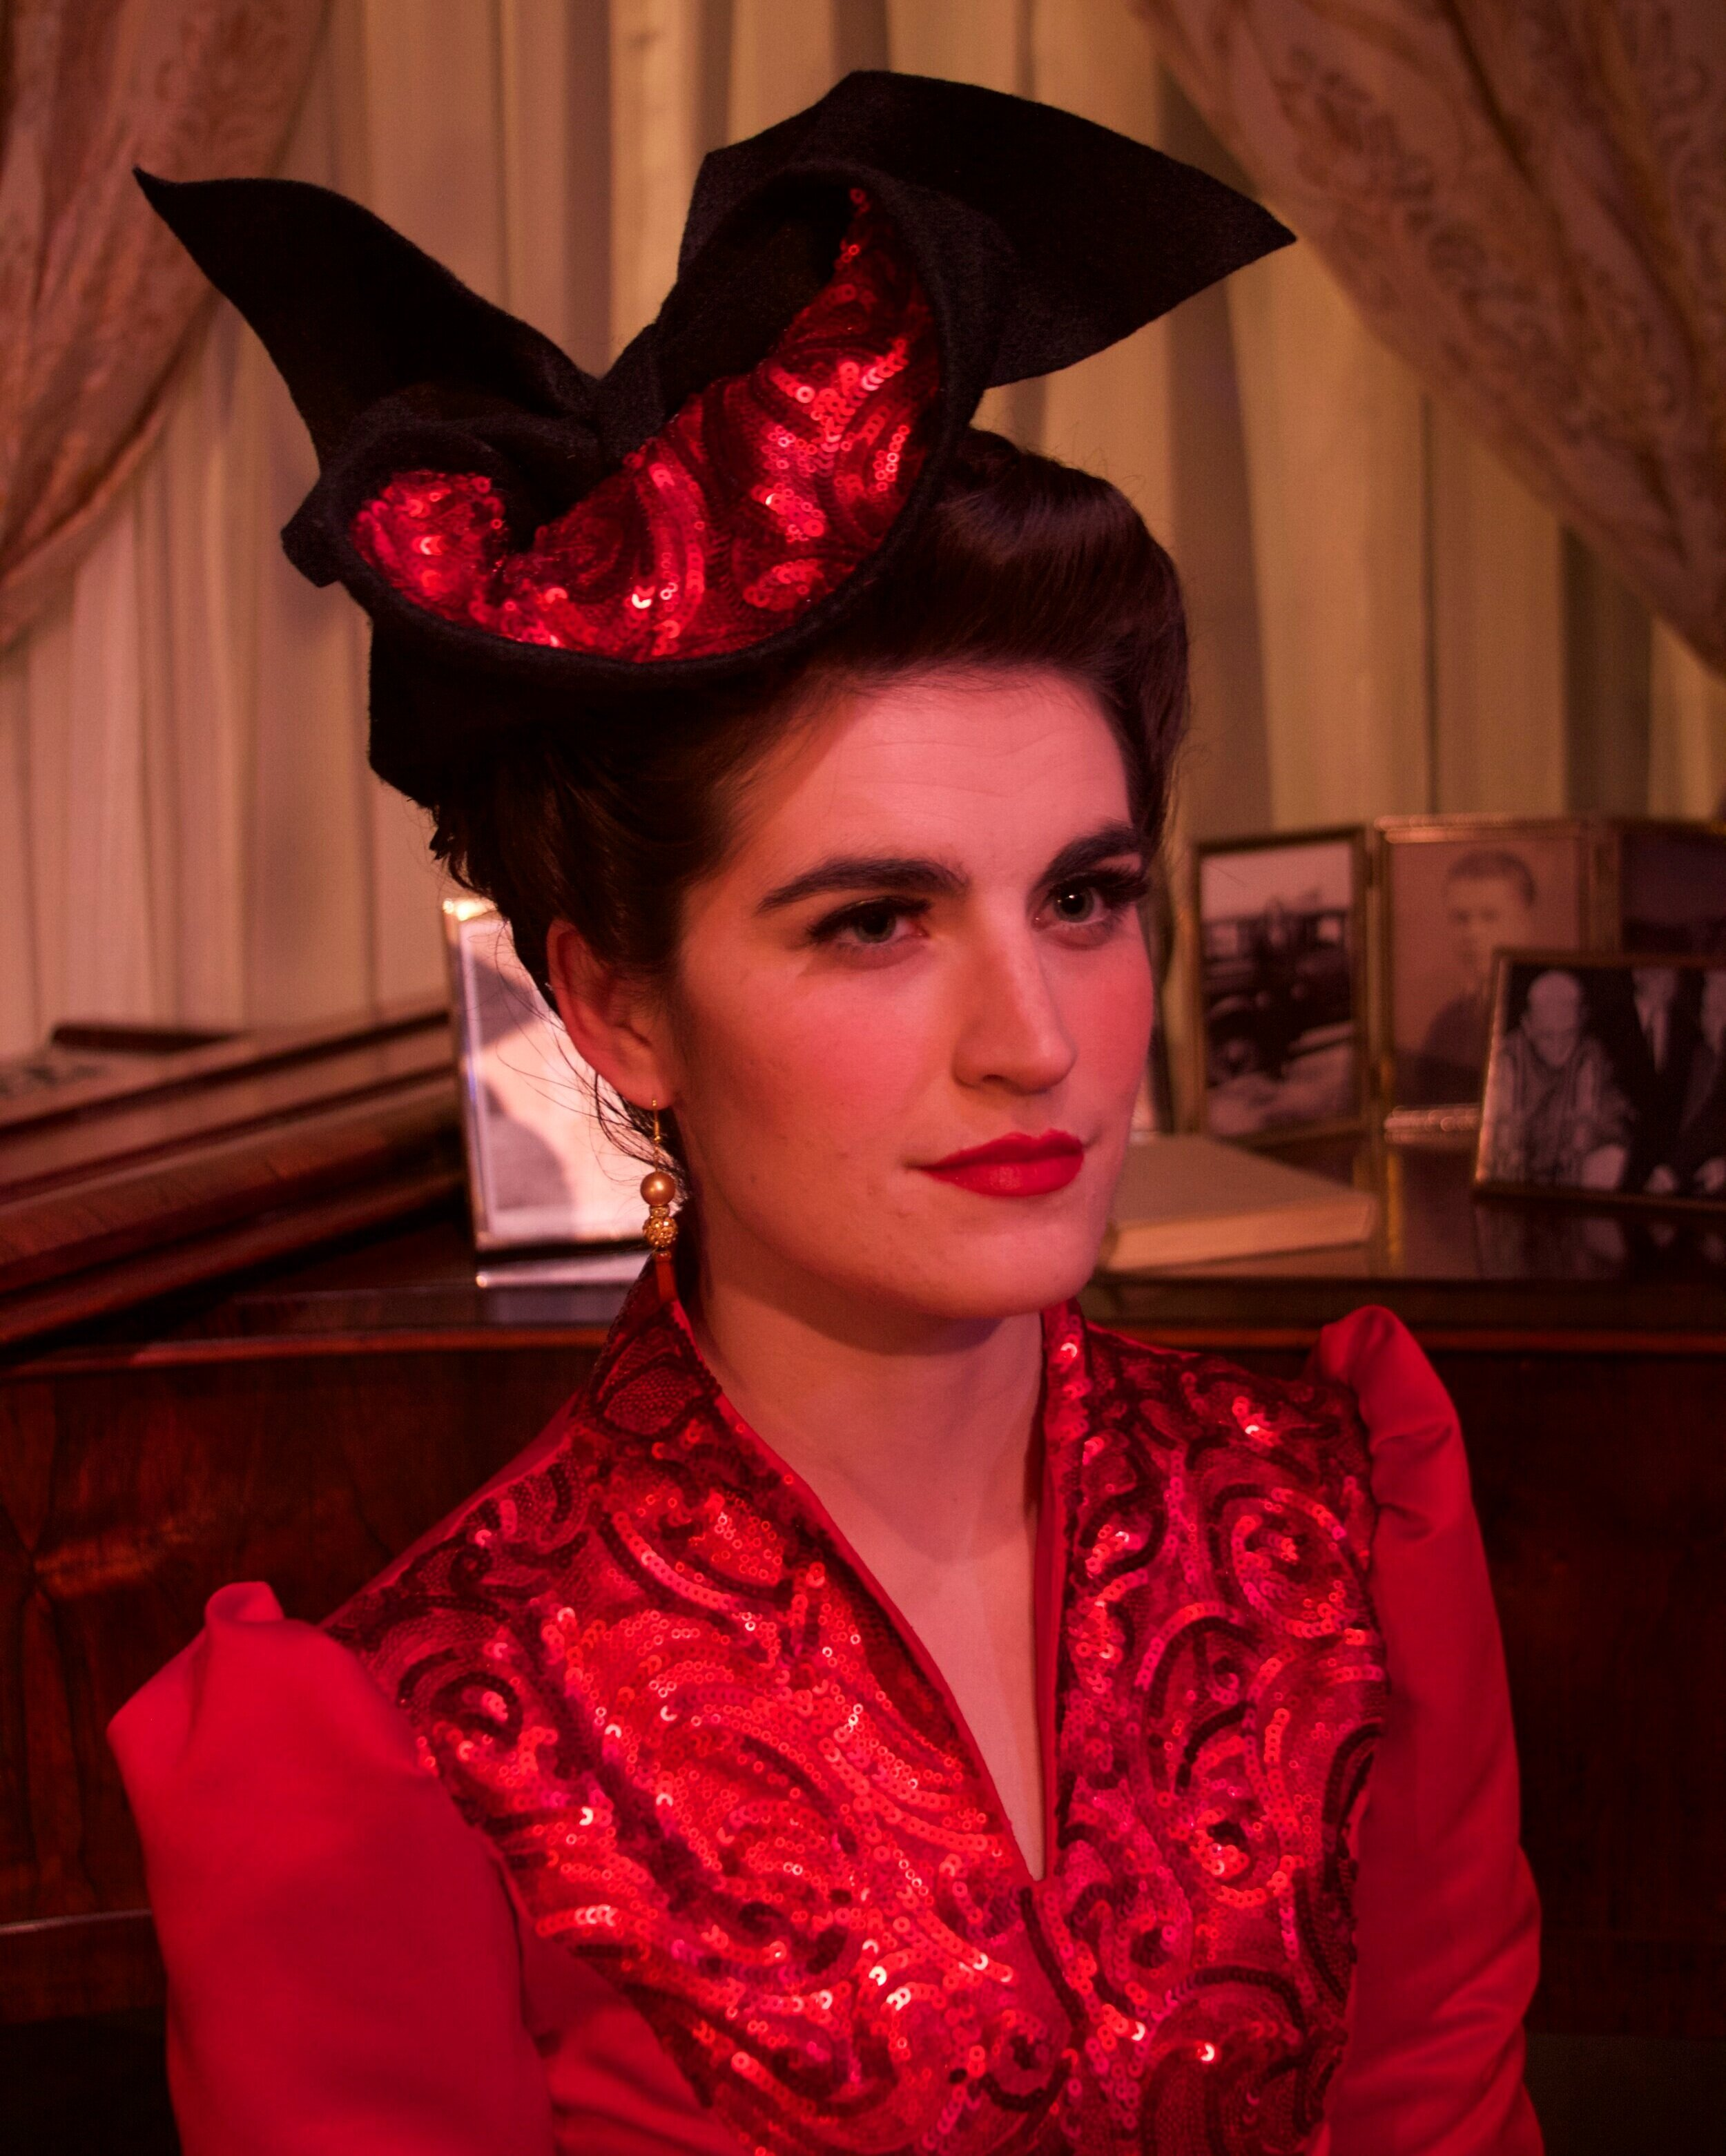 Lorraine's Hat- The Man Who Came To Dinner- University of Texas Arlington 2015  Costume Design by Laurie Land. All designs by the staff of UTA. Photo courtesy of Laurie Land.